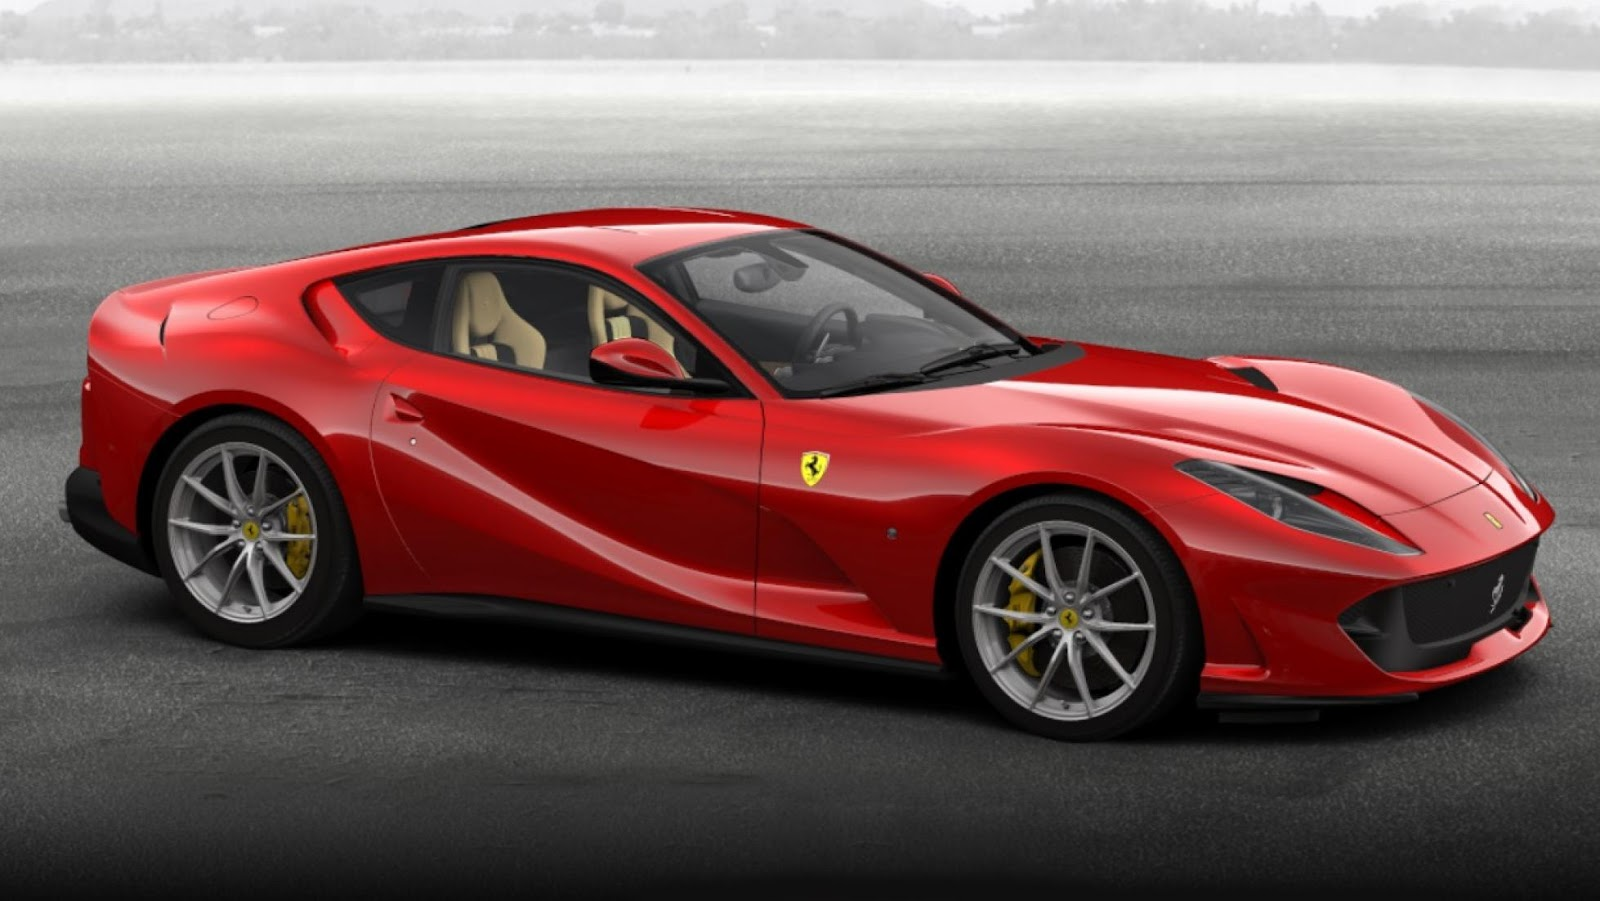 2018 ferrari 812 price. wonderful 812 blocking ads can be devastating to sites you love and result in people  losing their jobs negatively affect the quality of content and 2018 ferrari 812 price